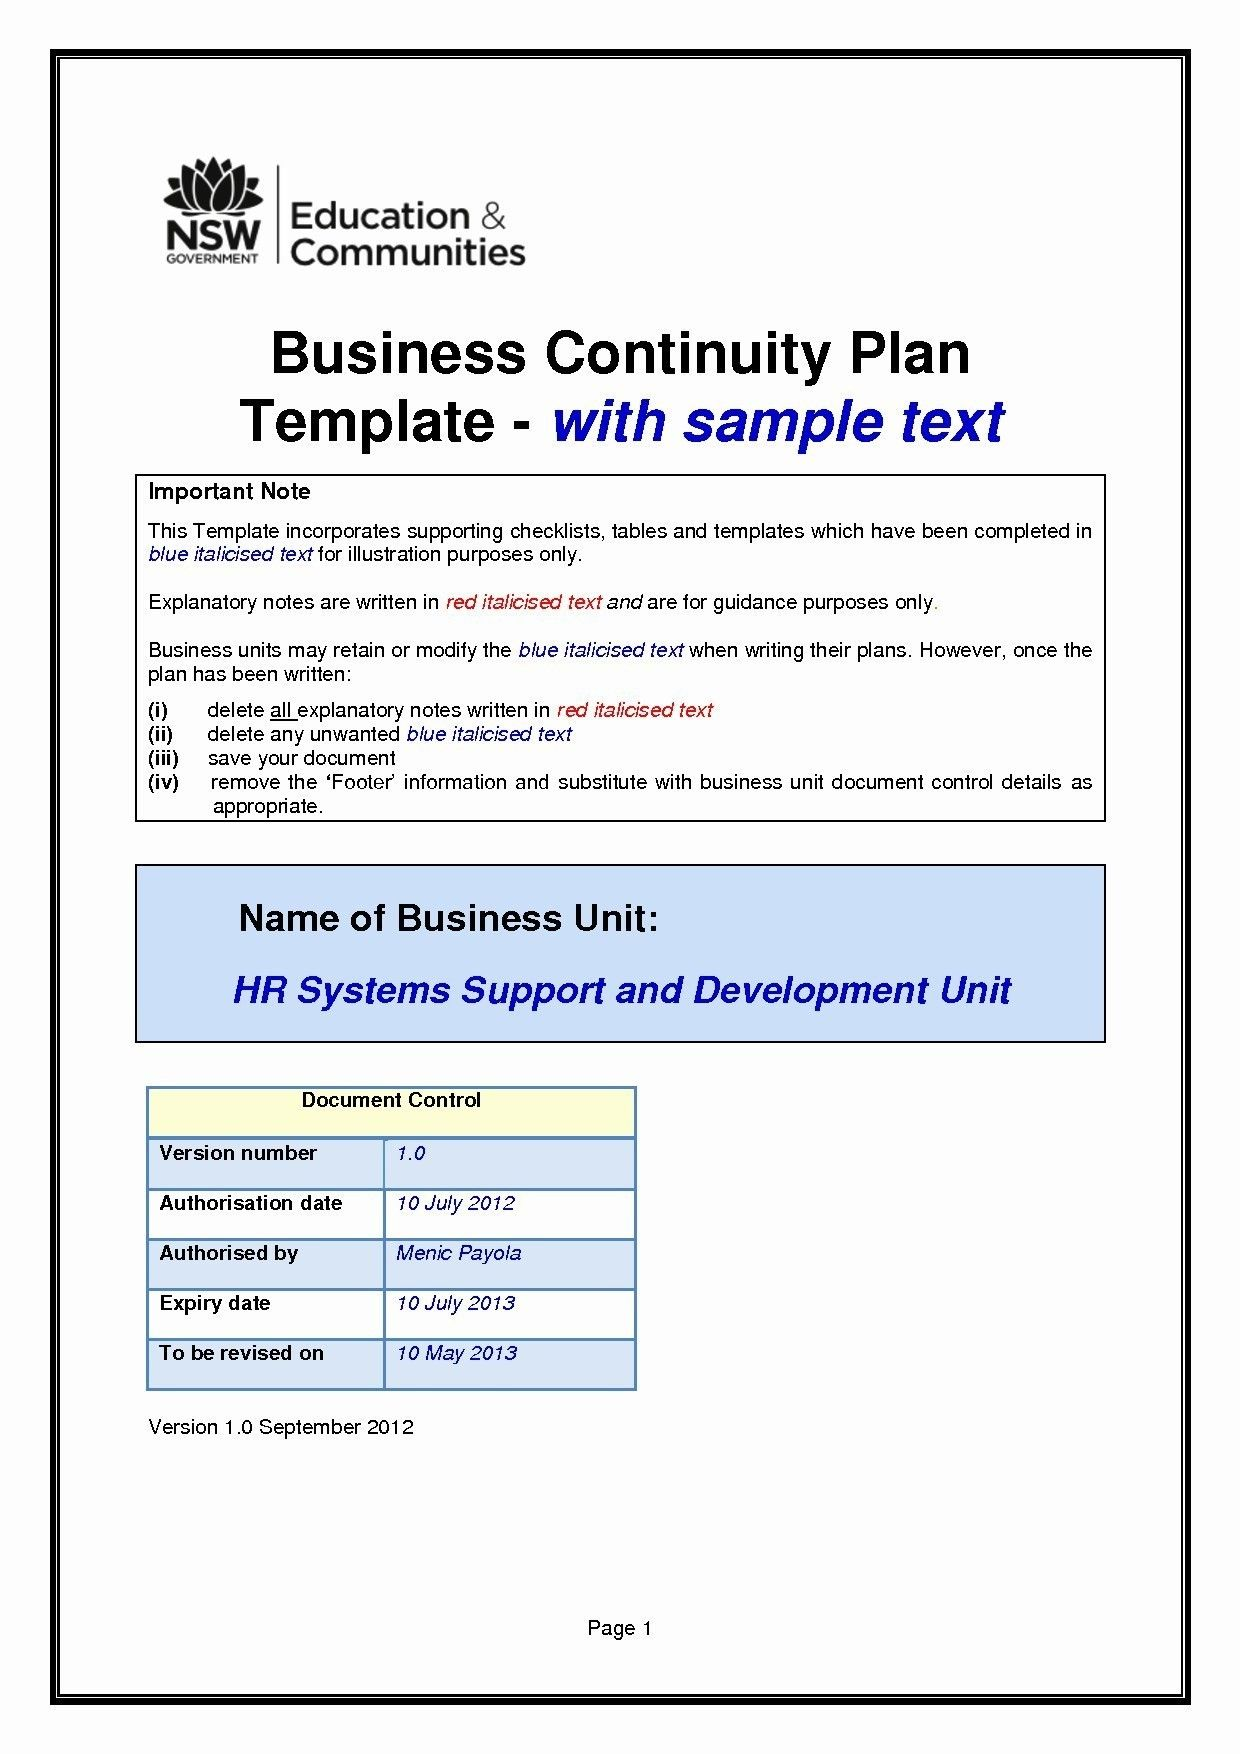 New School Business Continuity Plan Template Business